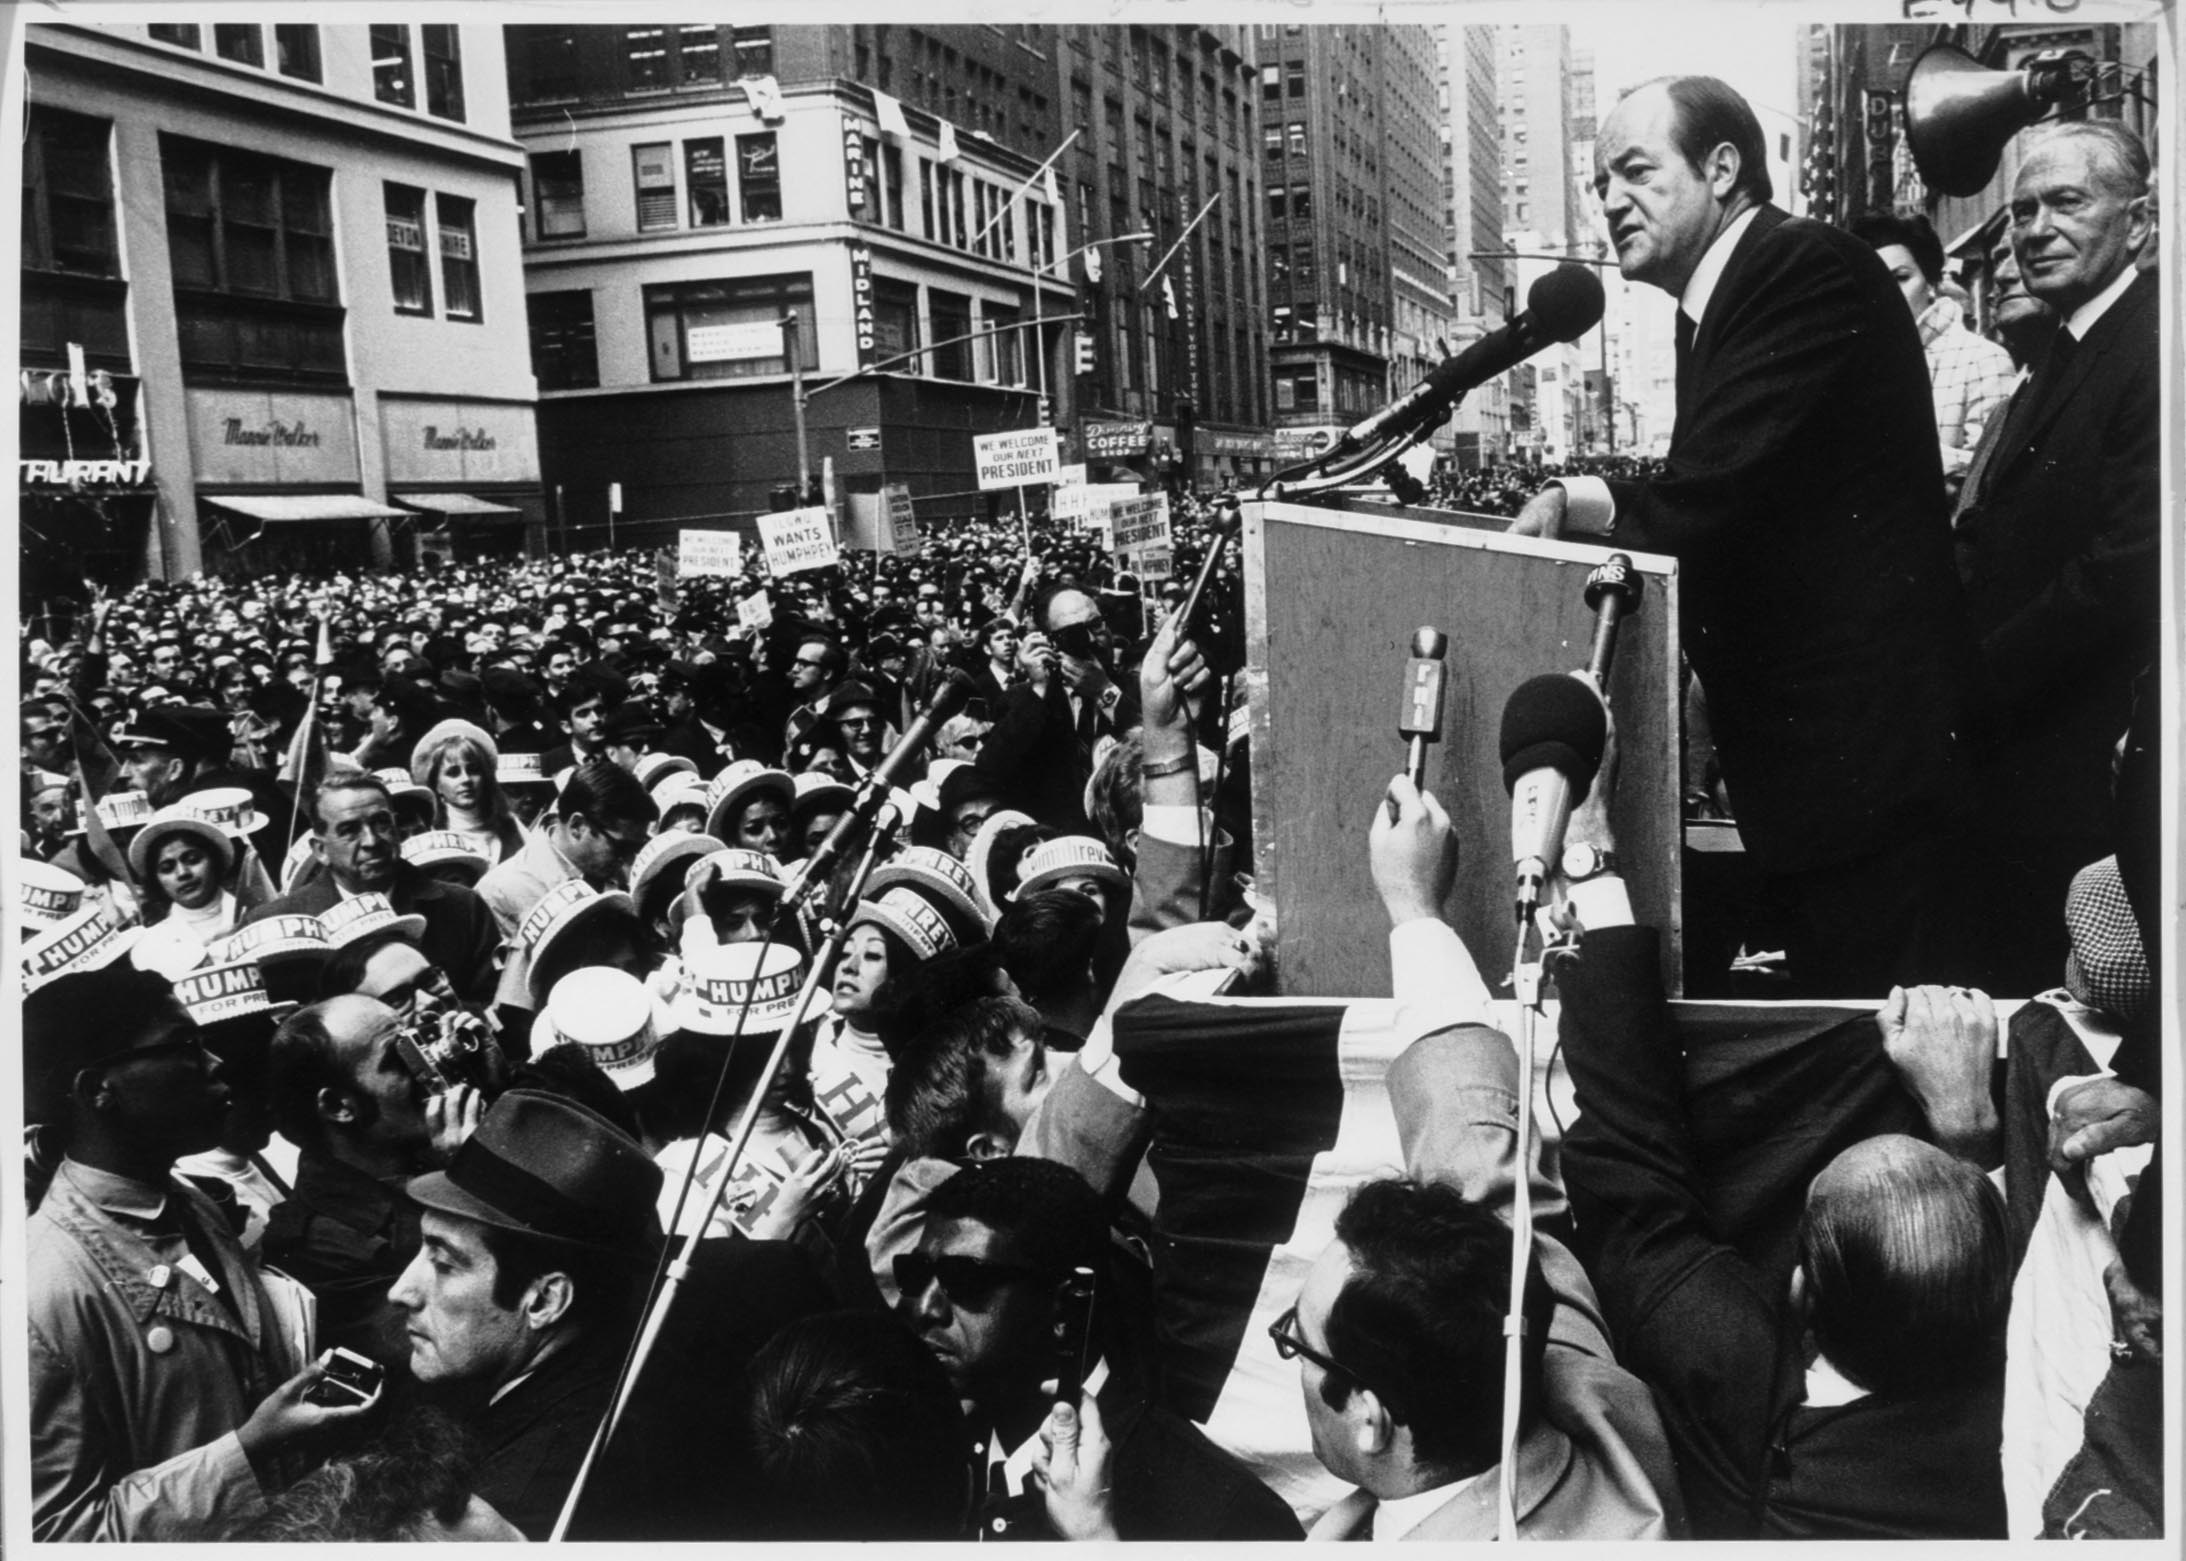 Caption: Hubert Humphrey in a presidential stump speech.